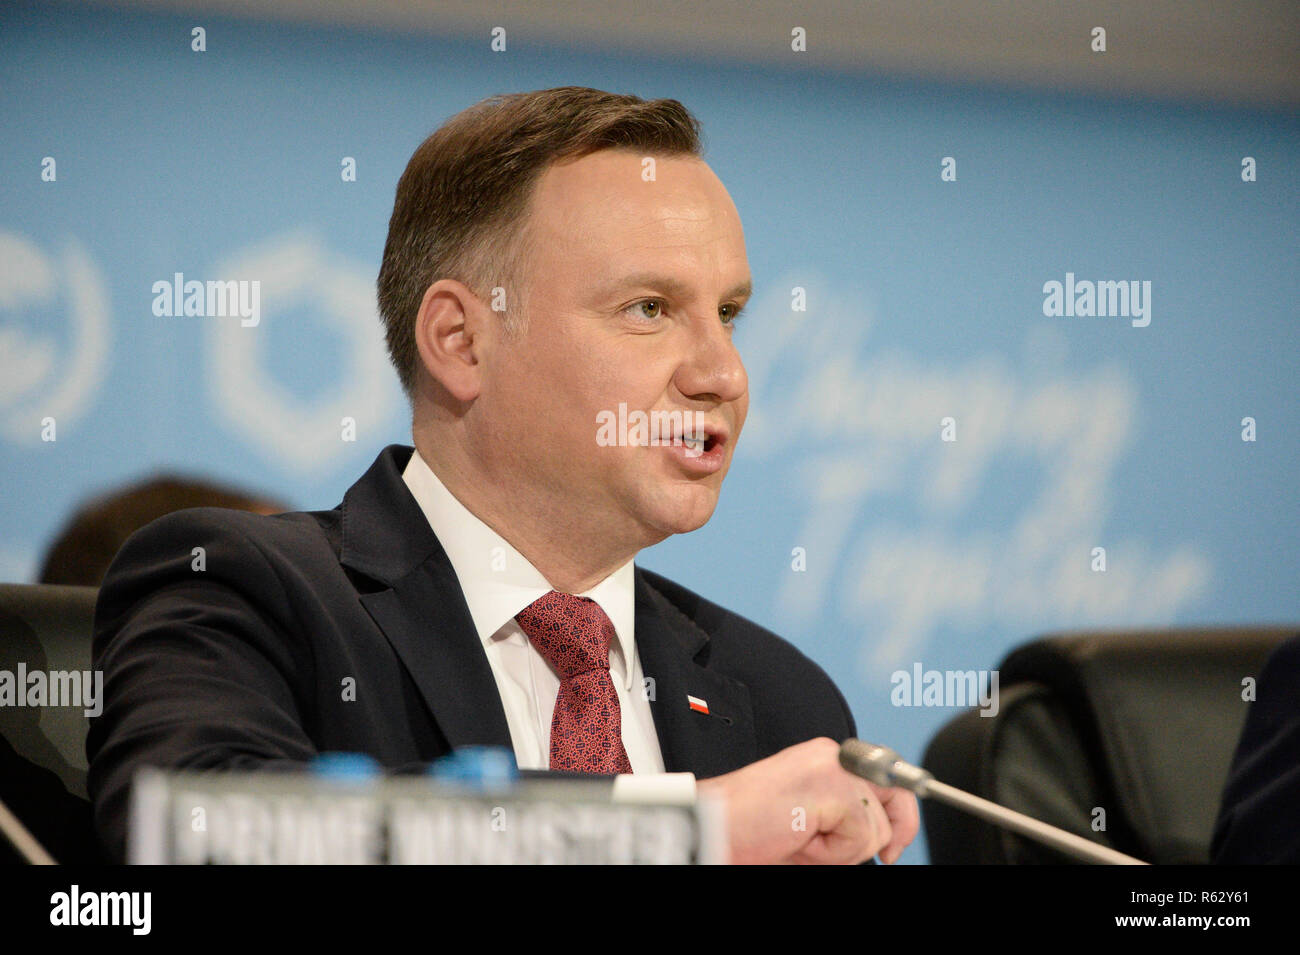 Katowice, Poland. 3rd Dec, 2018. Polish President Andrzej Duda addresses the UN Climate Change Conference in Katowice, Poland, Dec. 3, 2018. Delegates from nearly 200 countries began talks on Sunday on urgent actions to curb climate change three years after the landmark Paris Climate Change Agreement set a goal of keeping global warming below 2 degrees Celsius. The two-week UN Climate Change Conference, known as COP24, is held in the southern Polish city of Katowice. Credit: Jaap Arriens/Xinhua/Alamy Live News - Stock Image